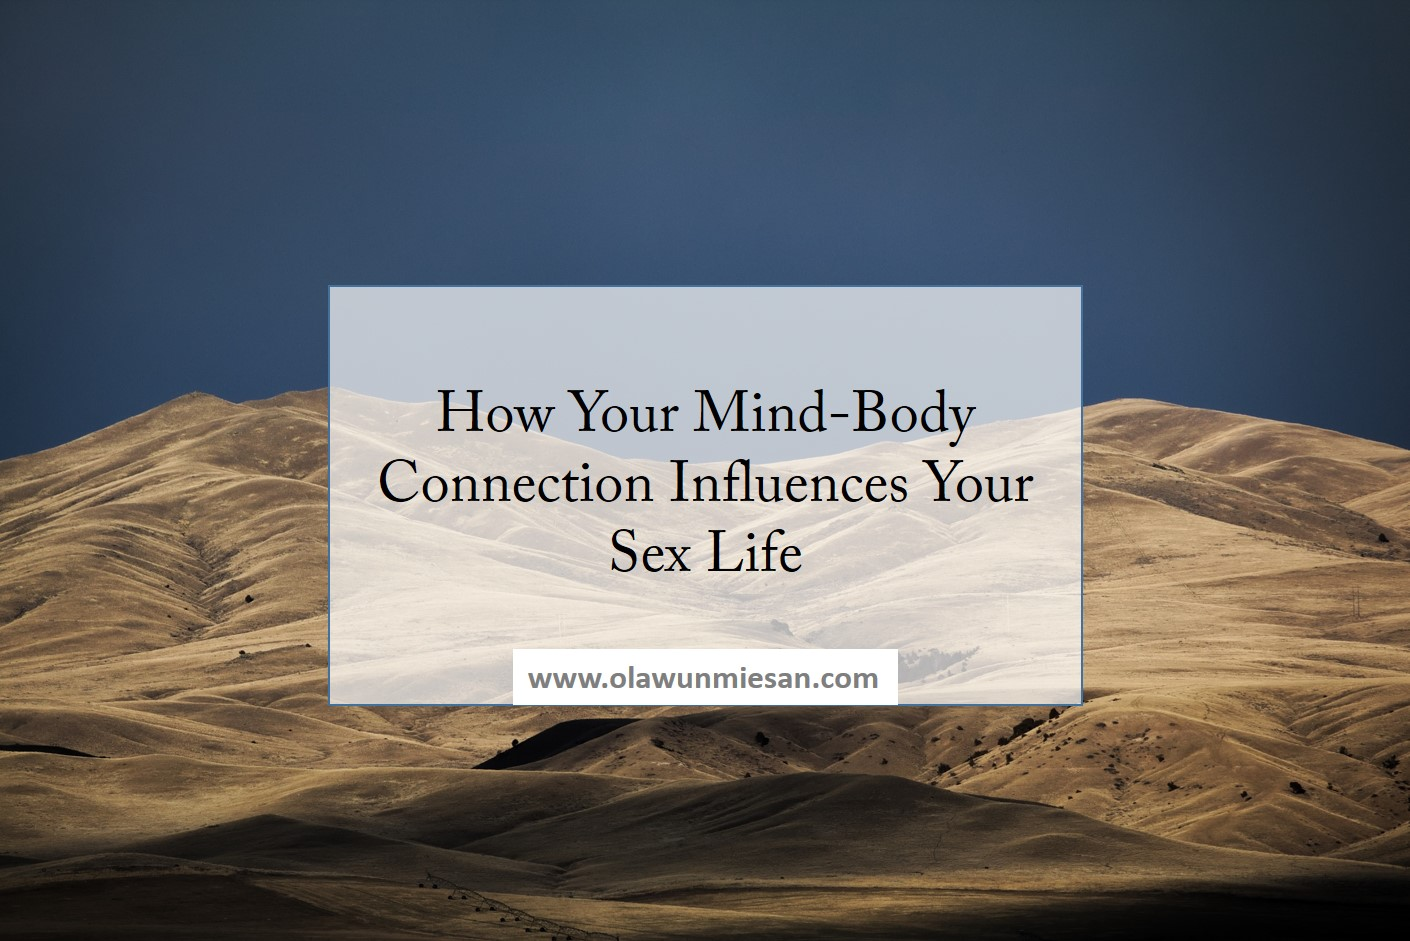 How Your Mind-Body Connection Influences Your Sex Life